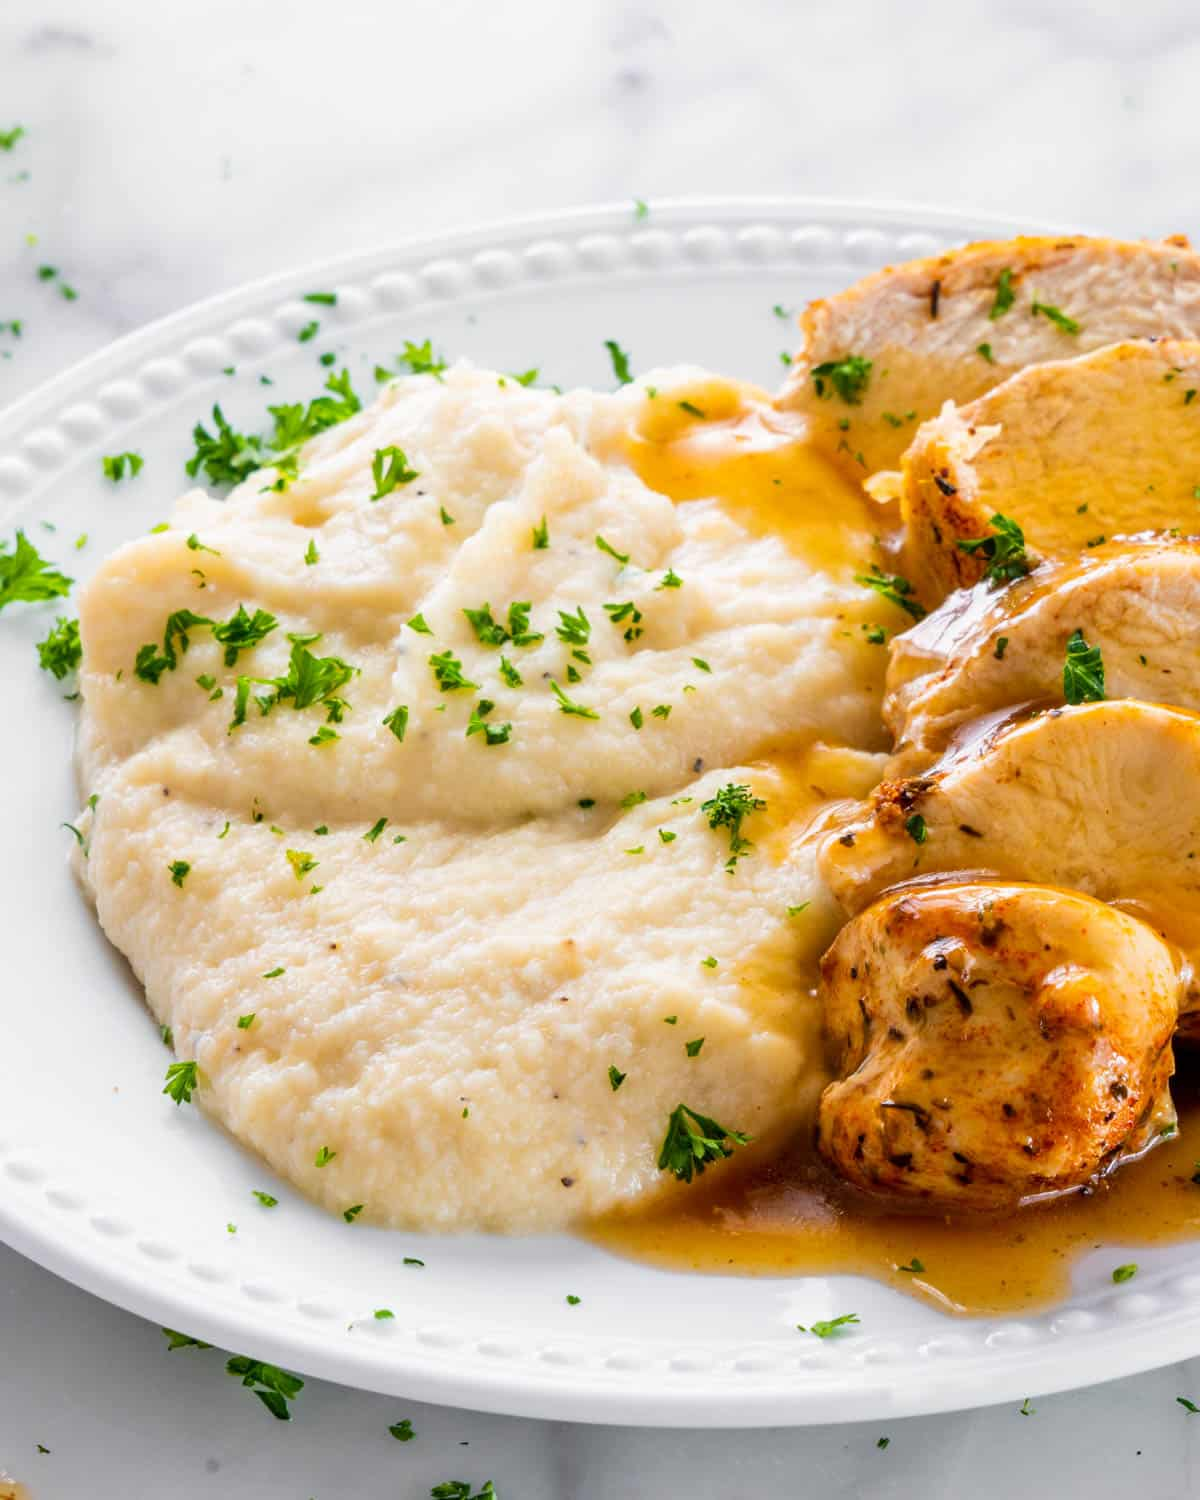 mashed cauliflower with chicken and gravy on a white plate